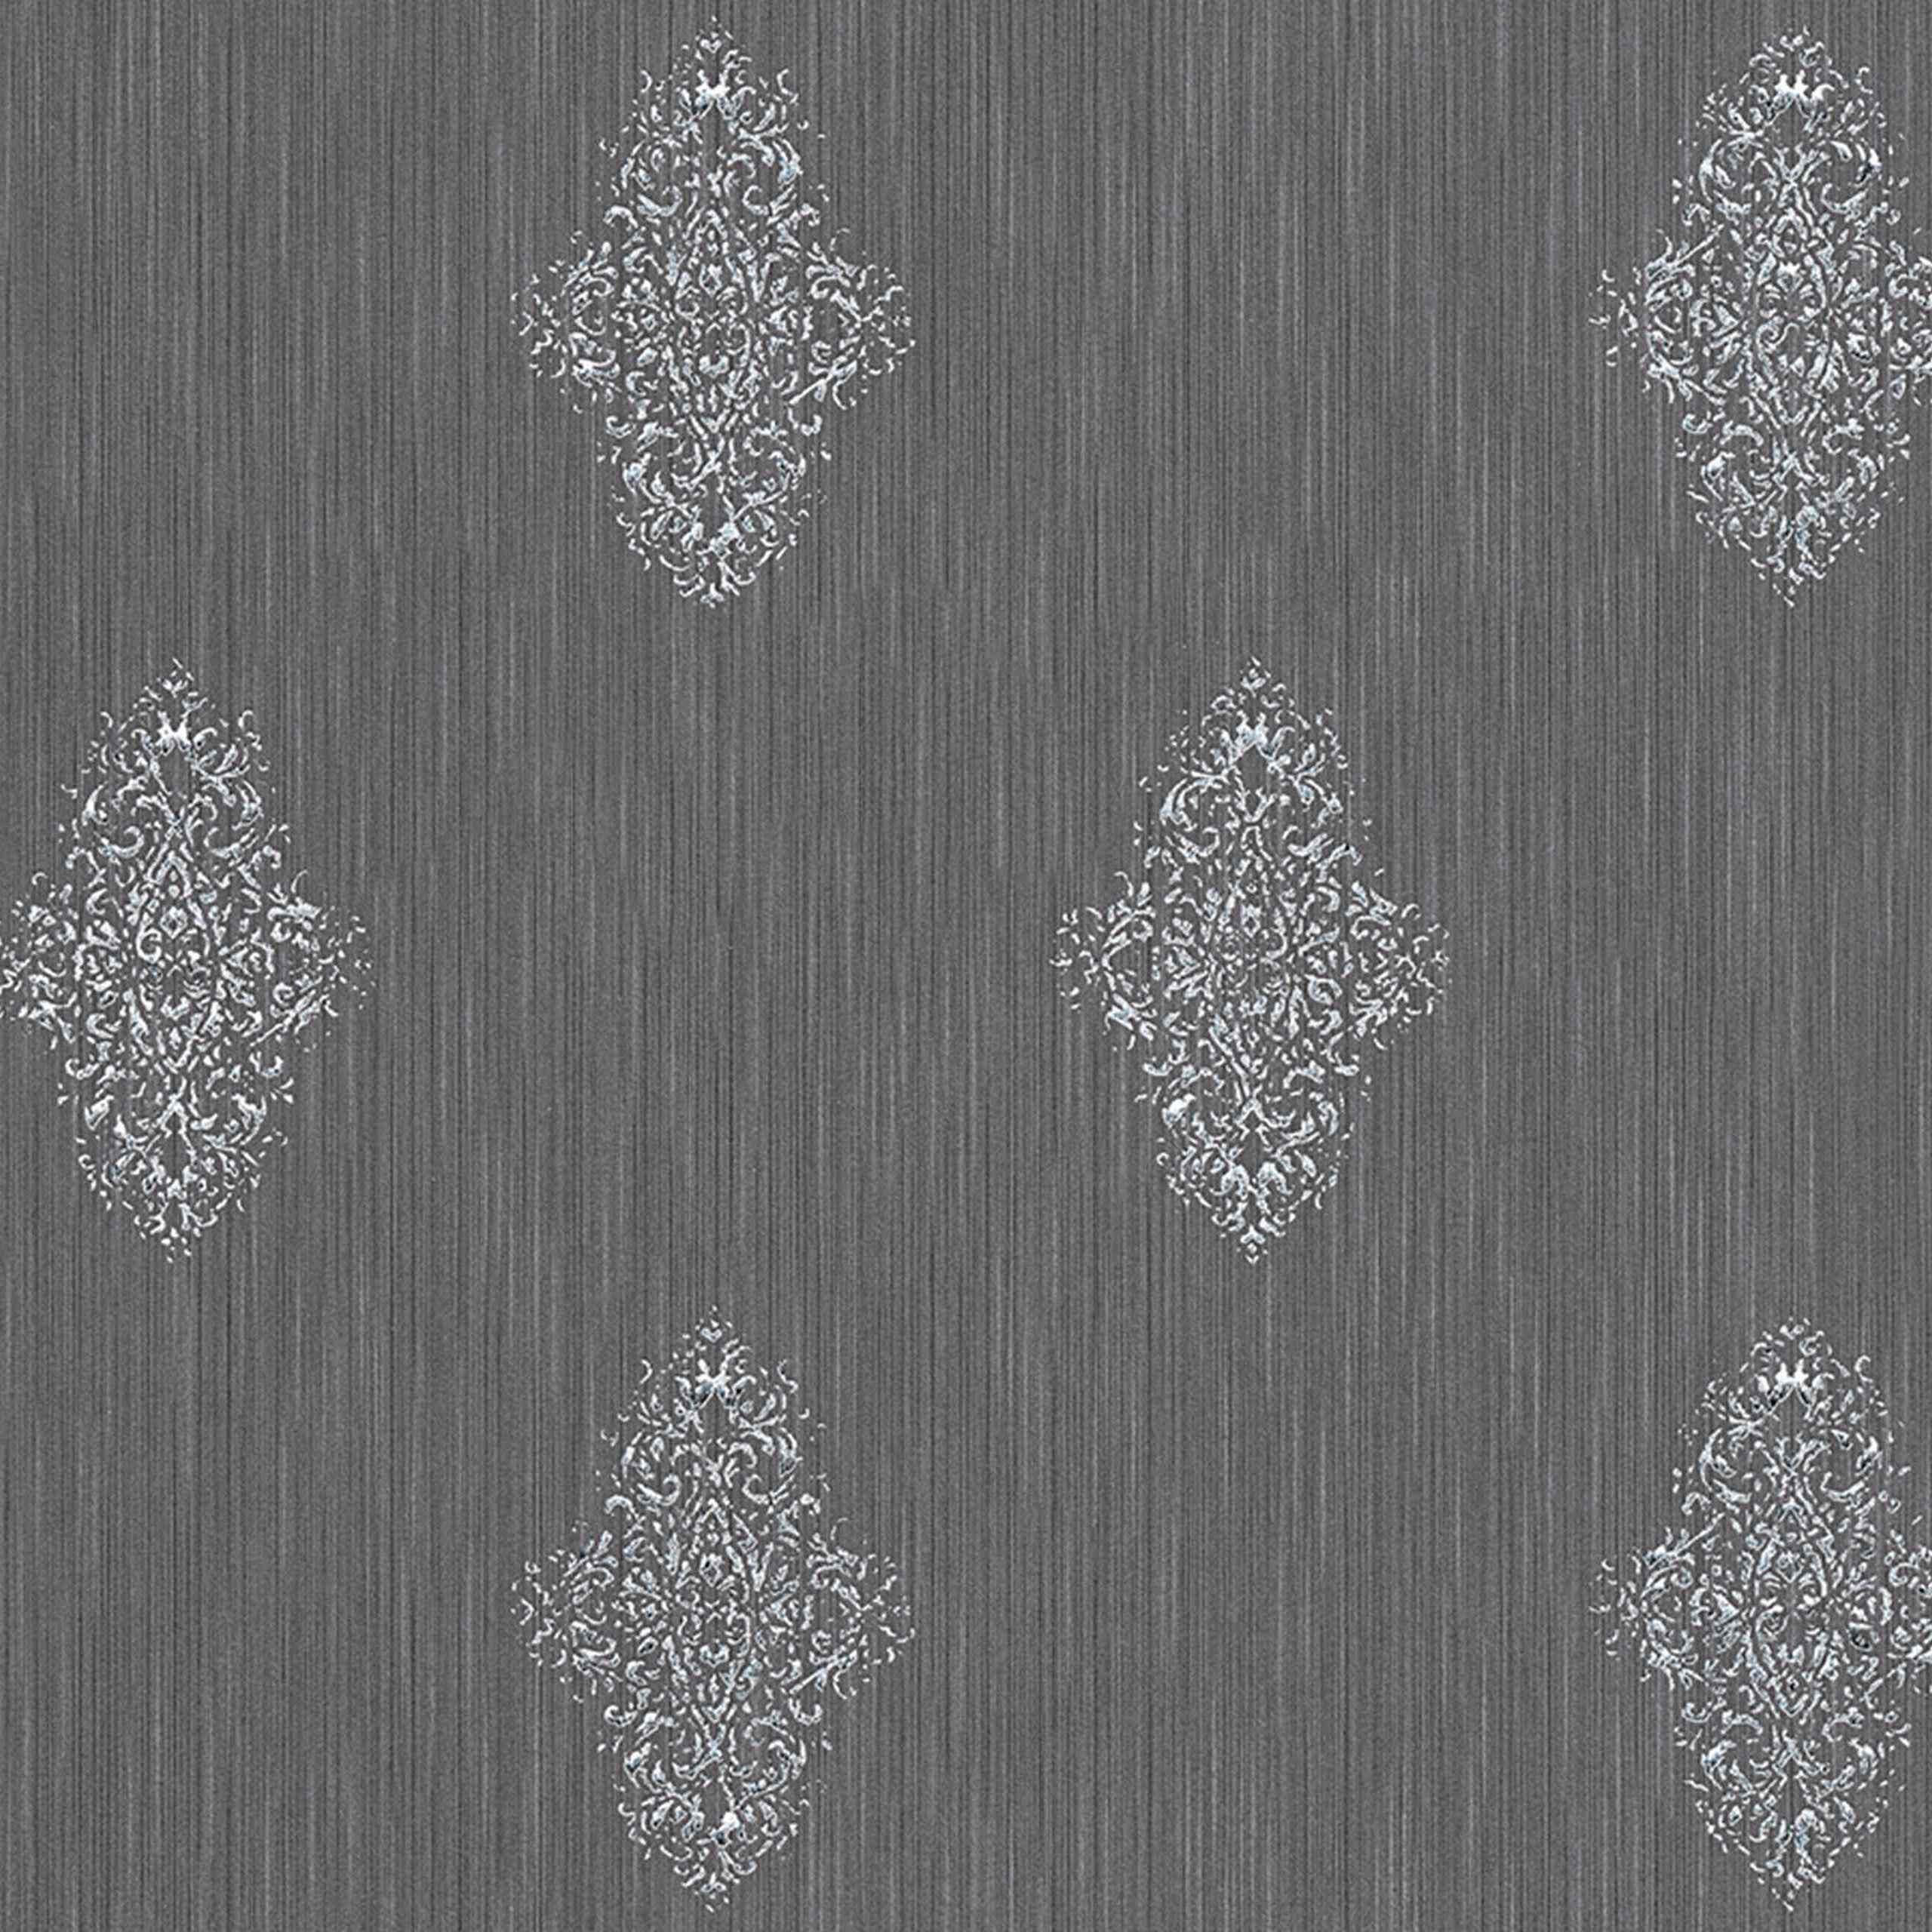 A.S. Creation Tapete Kollektion Luxury Wallpaper 319464 Barock